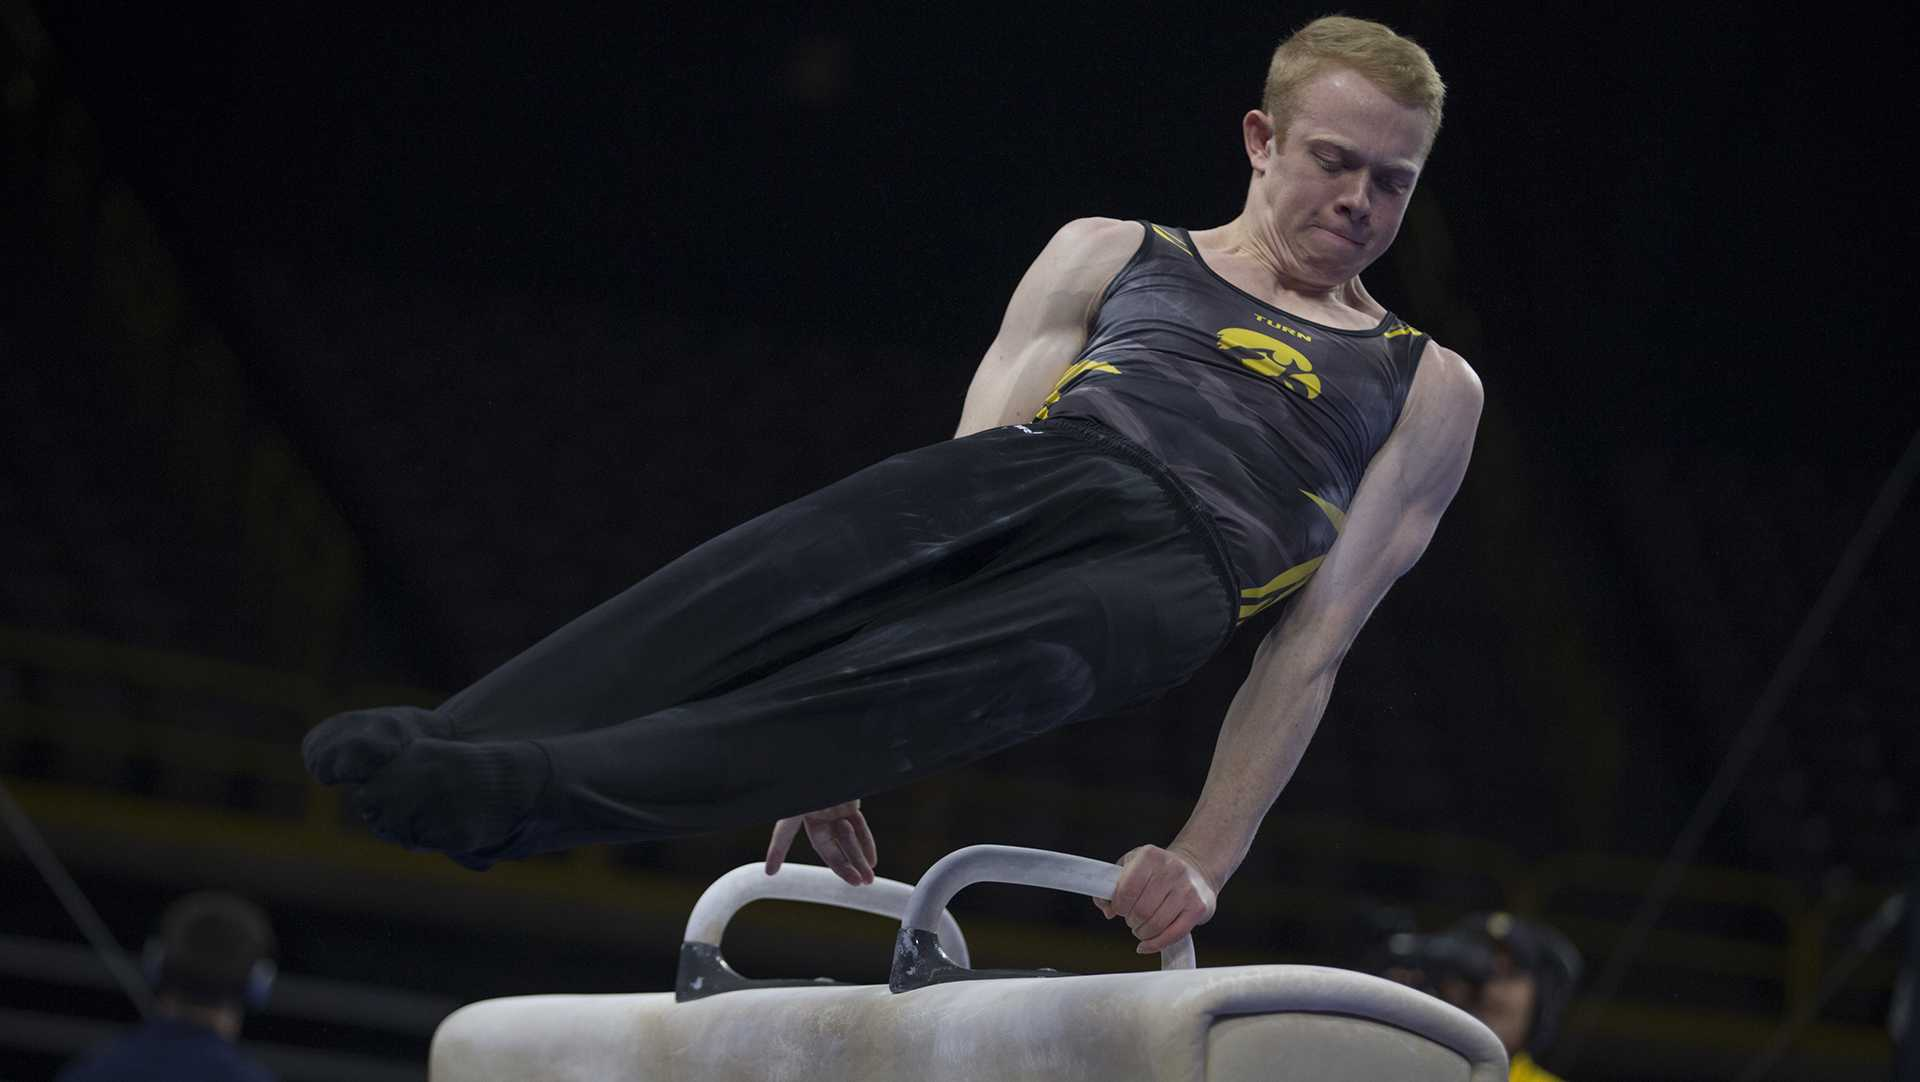 Nick Merryman competes on the pommel during men's gymnastics Iowa vs. Penn State and Arizona State on Mar. 3, 2018 at Carver Hawkeye Arena. Merryman earned 13.350 for his performance. The Hawkeyes defeated the Lions and the Sun Devils 404.050 to 396.550 and 376.150. (Katie Goodale/The Daily Iowan)